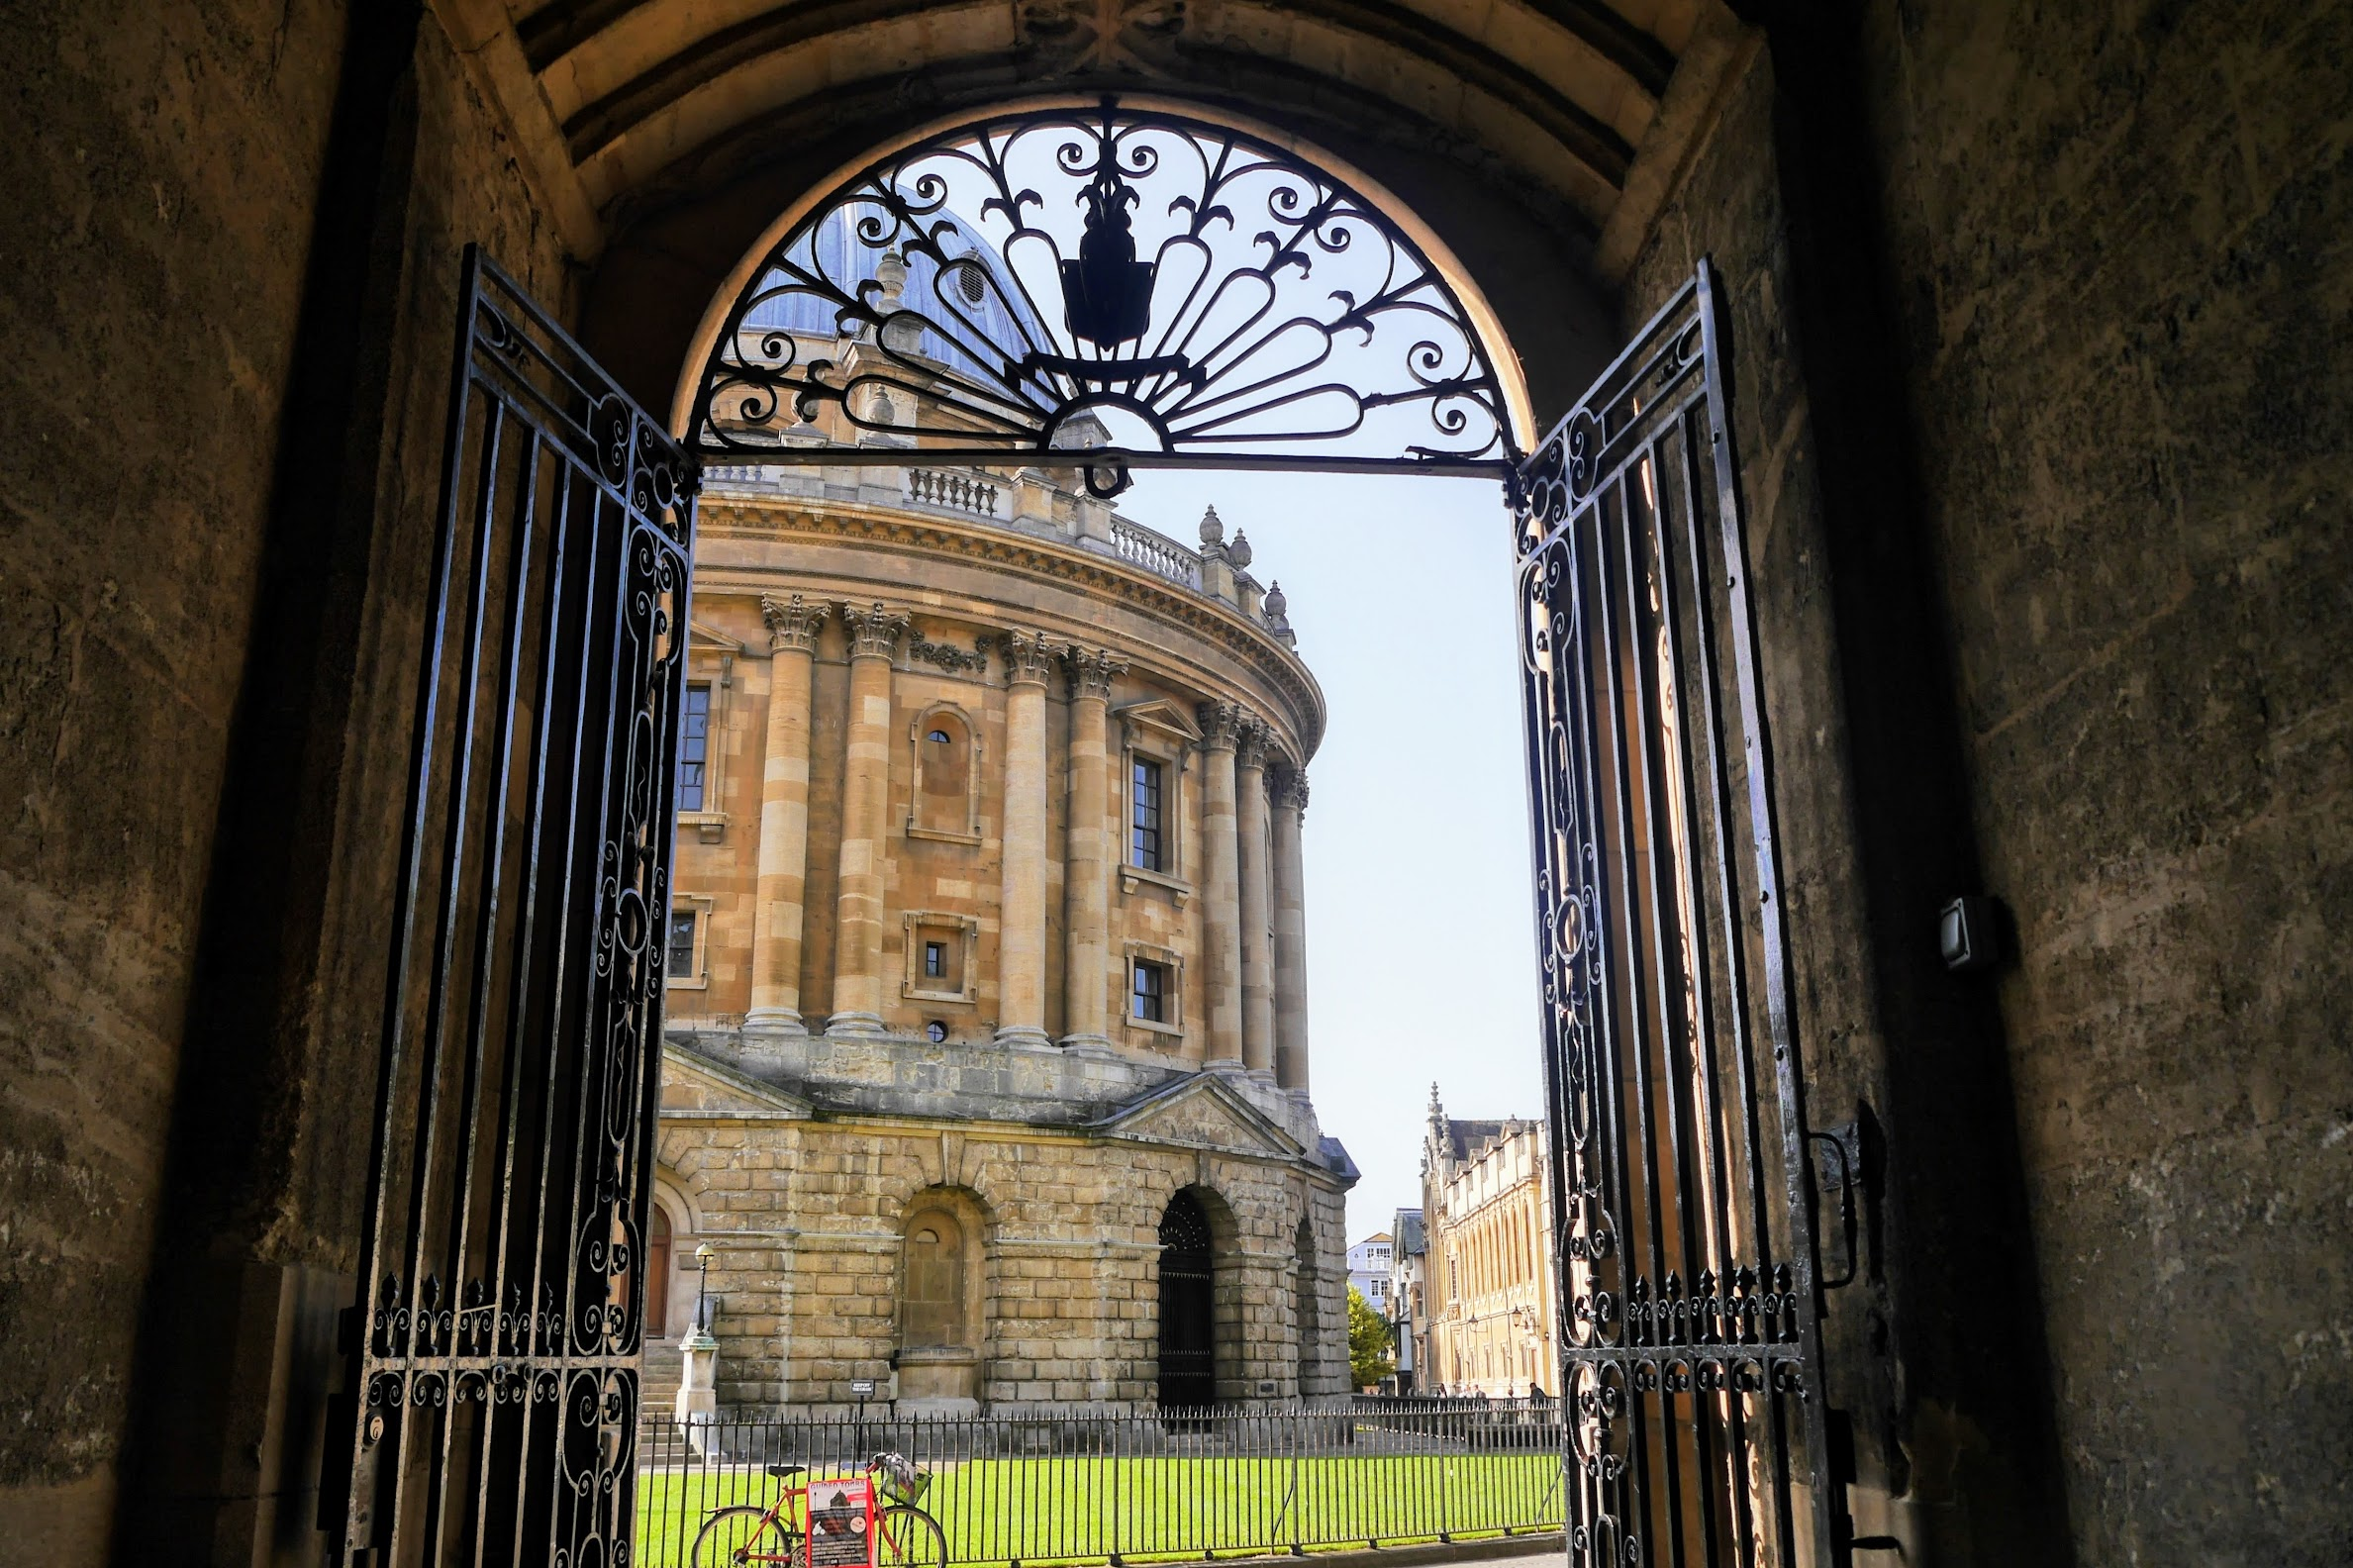 A photo taken of the Radcliffe Camera.